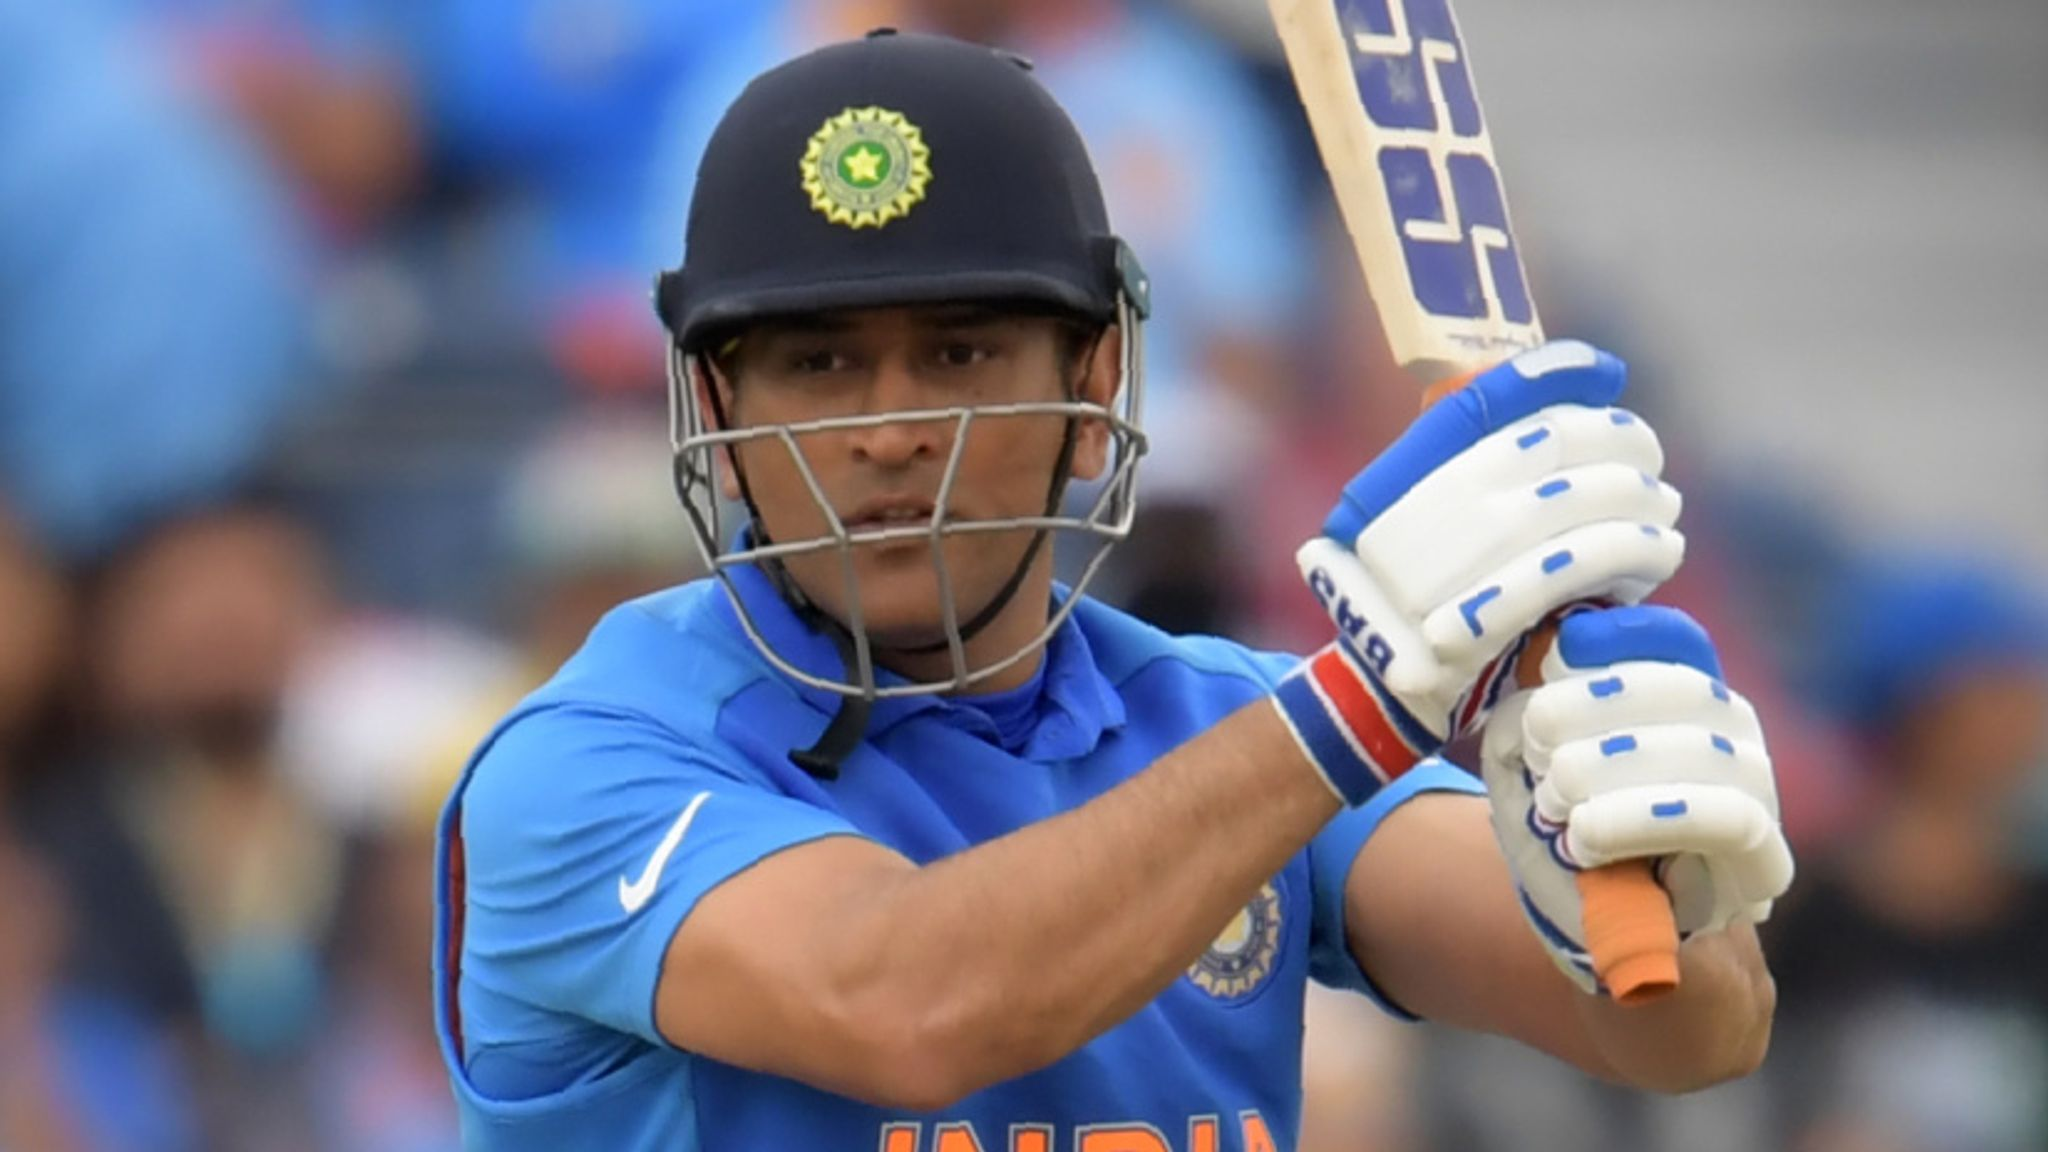 MS Dhoni's India career in doubt after losing central contract